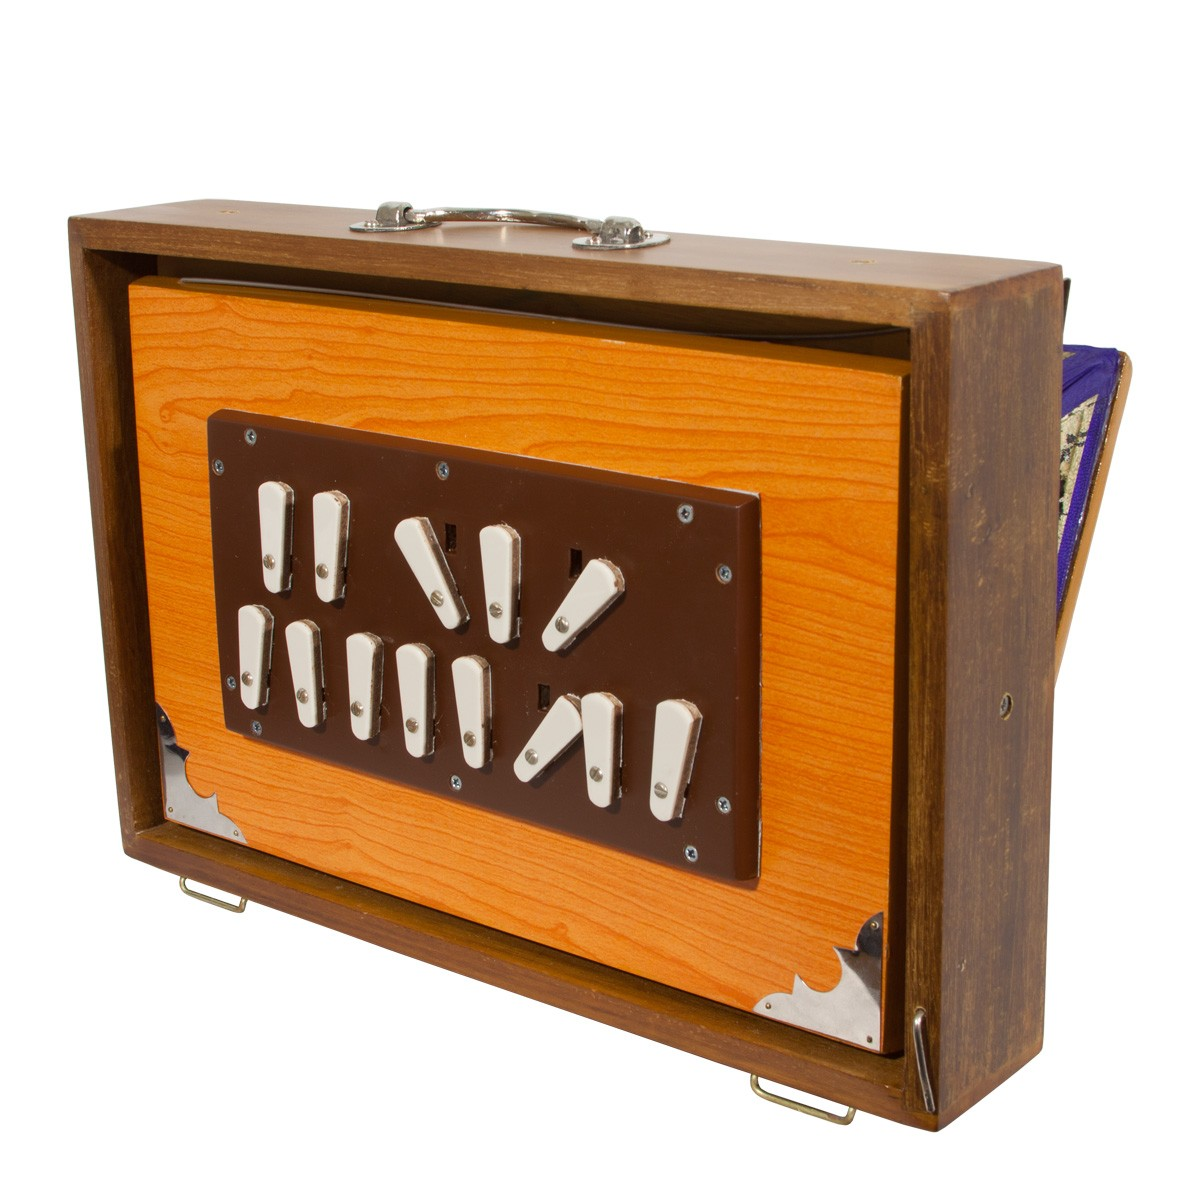 banjira Deluxe Shruti Box w/ Side Controls 4C-5C